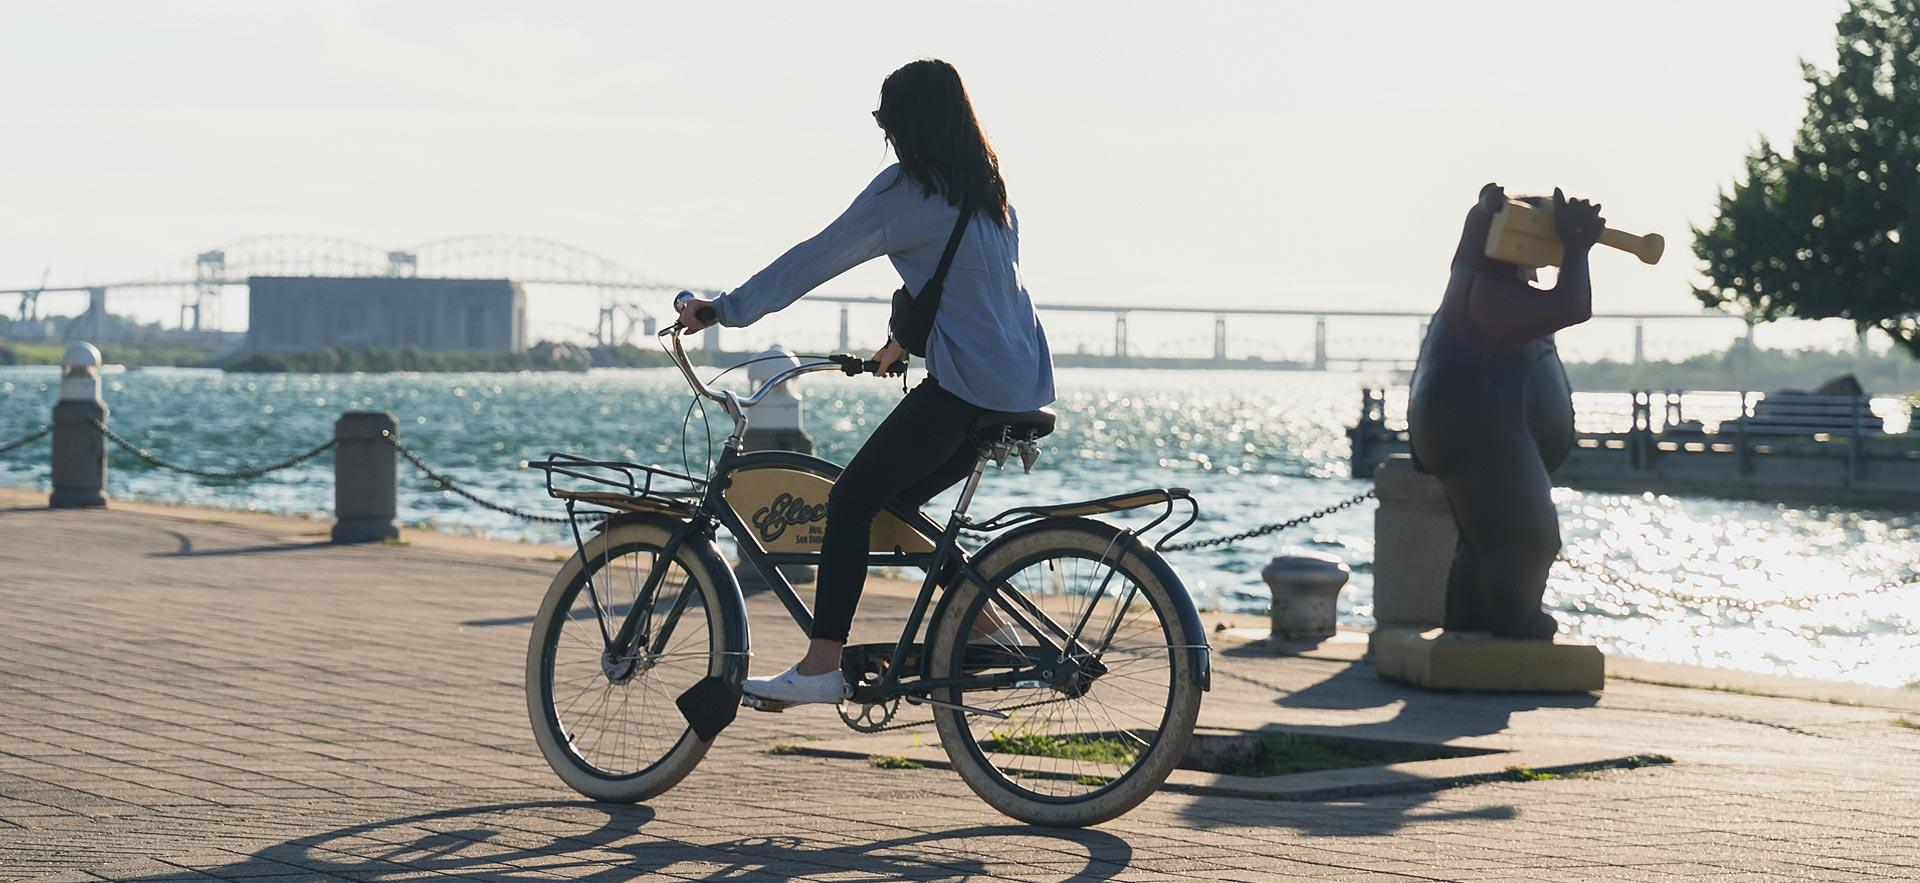 Young woman riding her bike on the boardwalk.